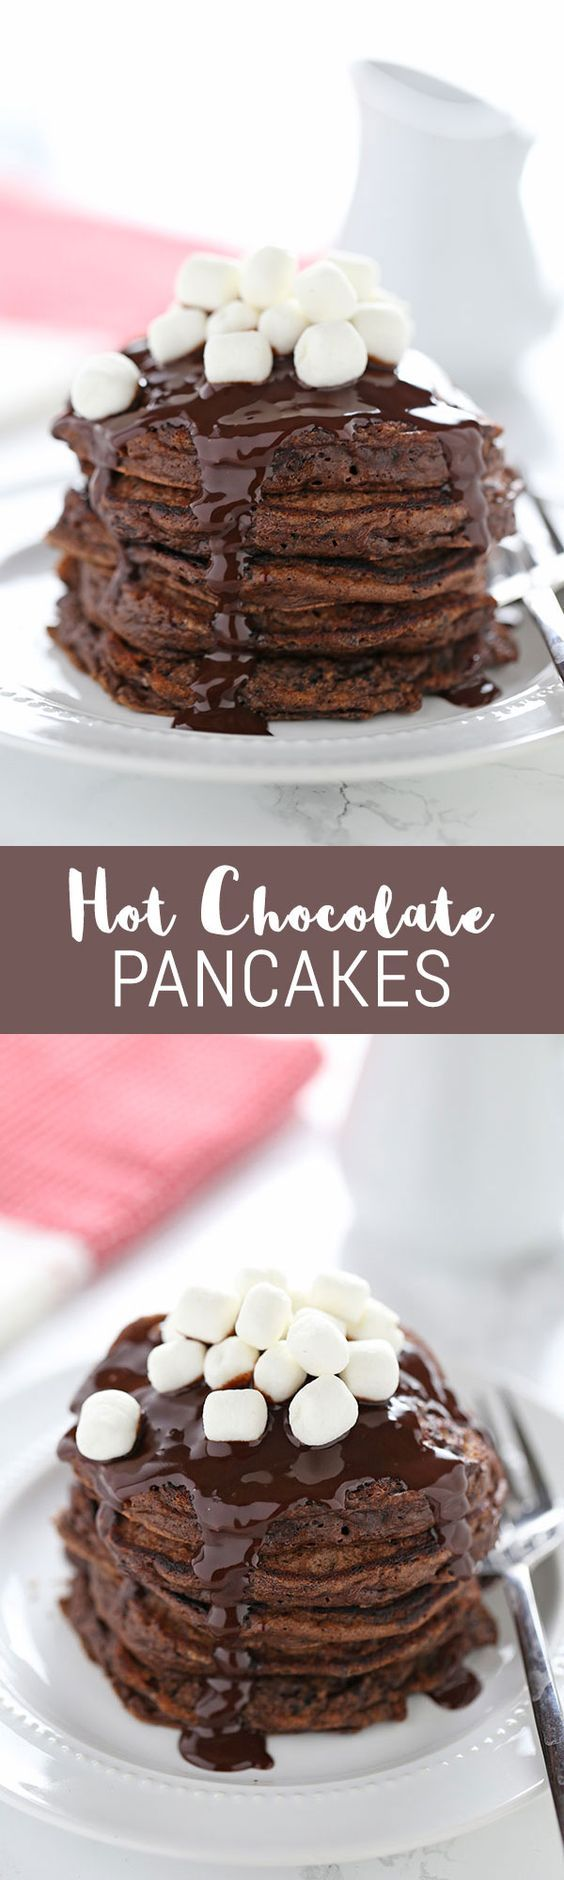 Hot Chocolate Pancakes Recipe via Handle the Heat - Make these for Christmas morning!! So delicious, and they take less than 30 minutes! We loved this Hot chocolate pancake recipe.